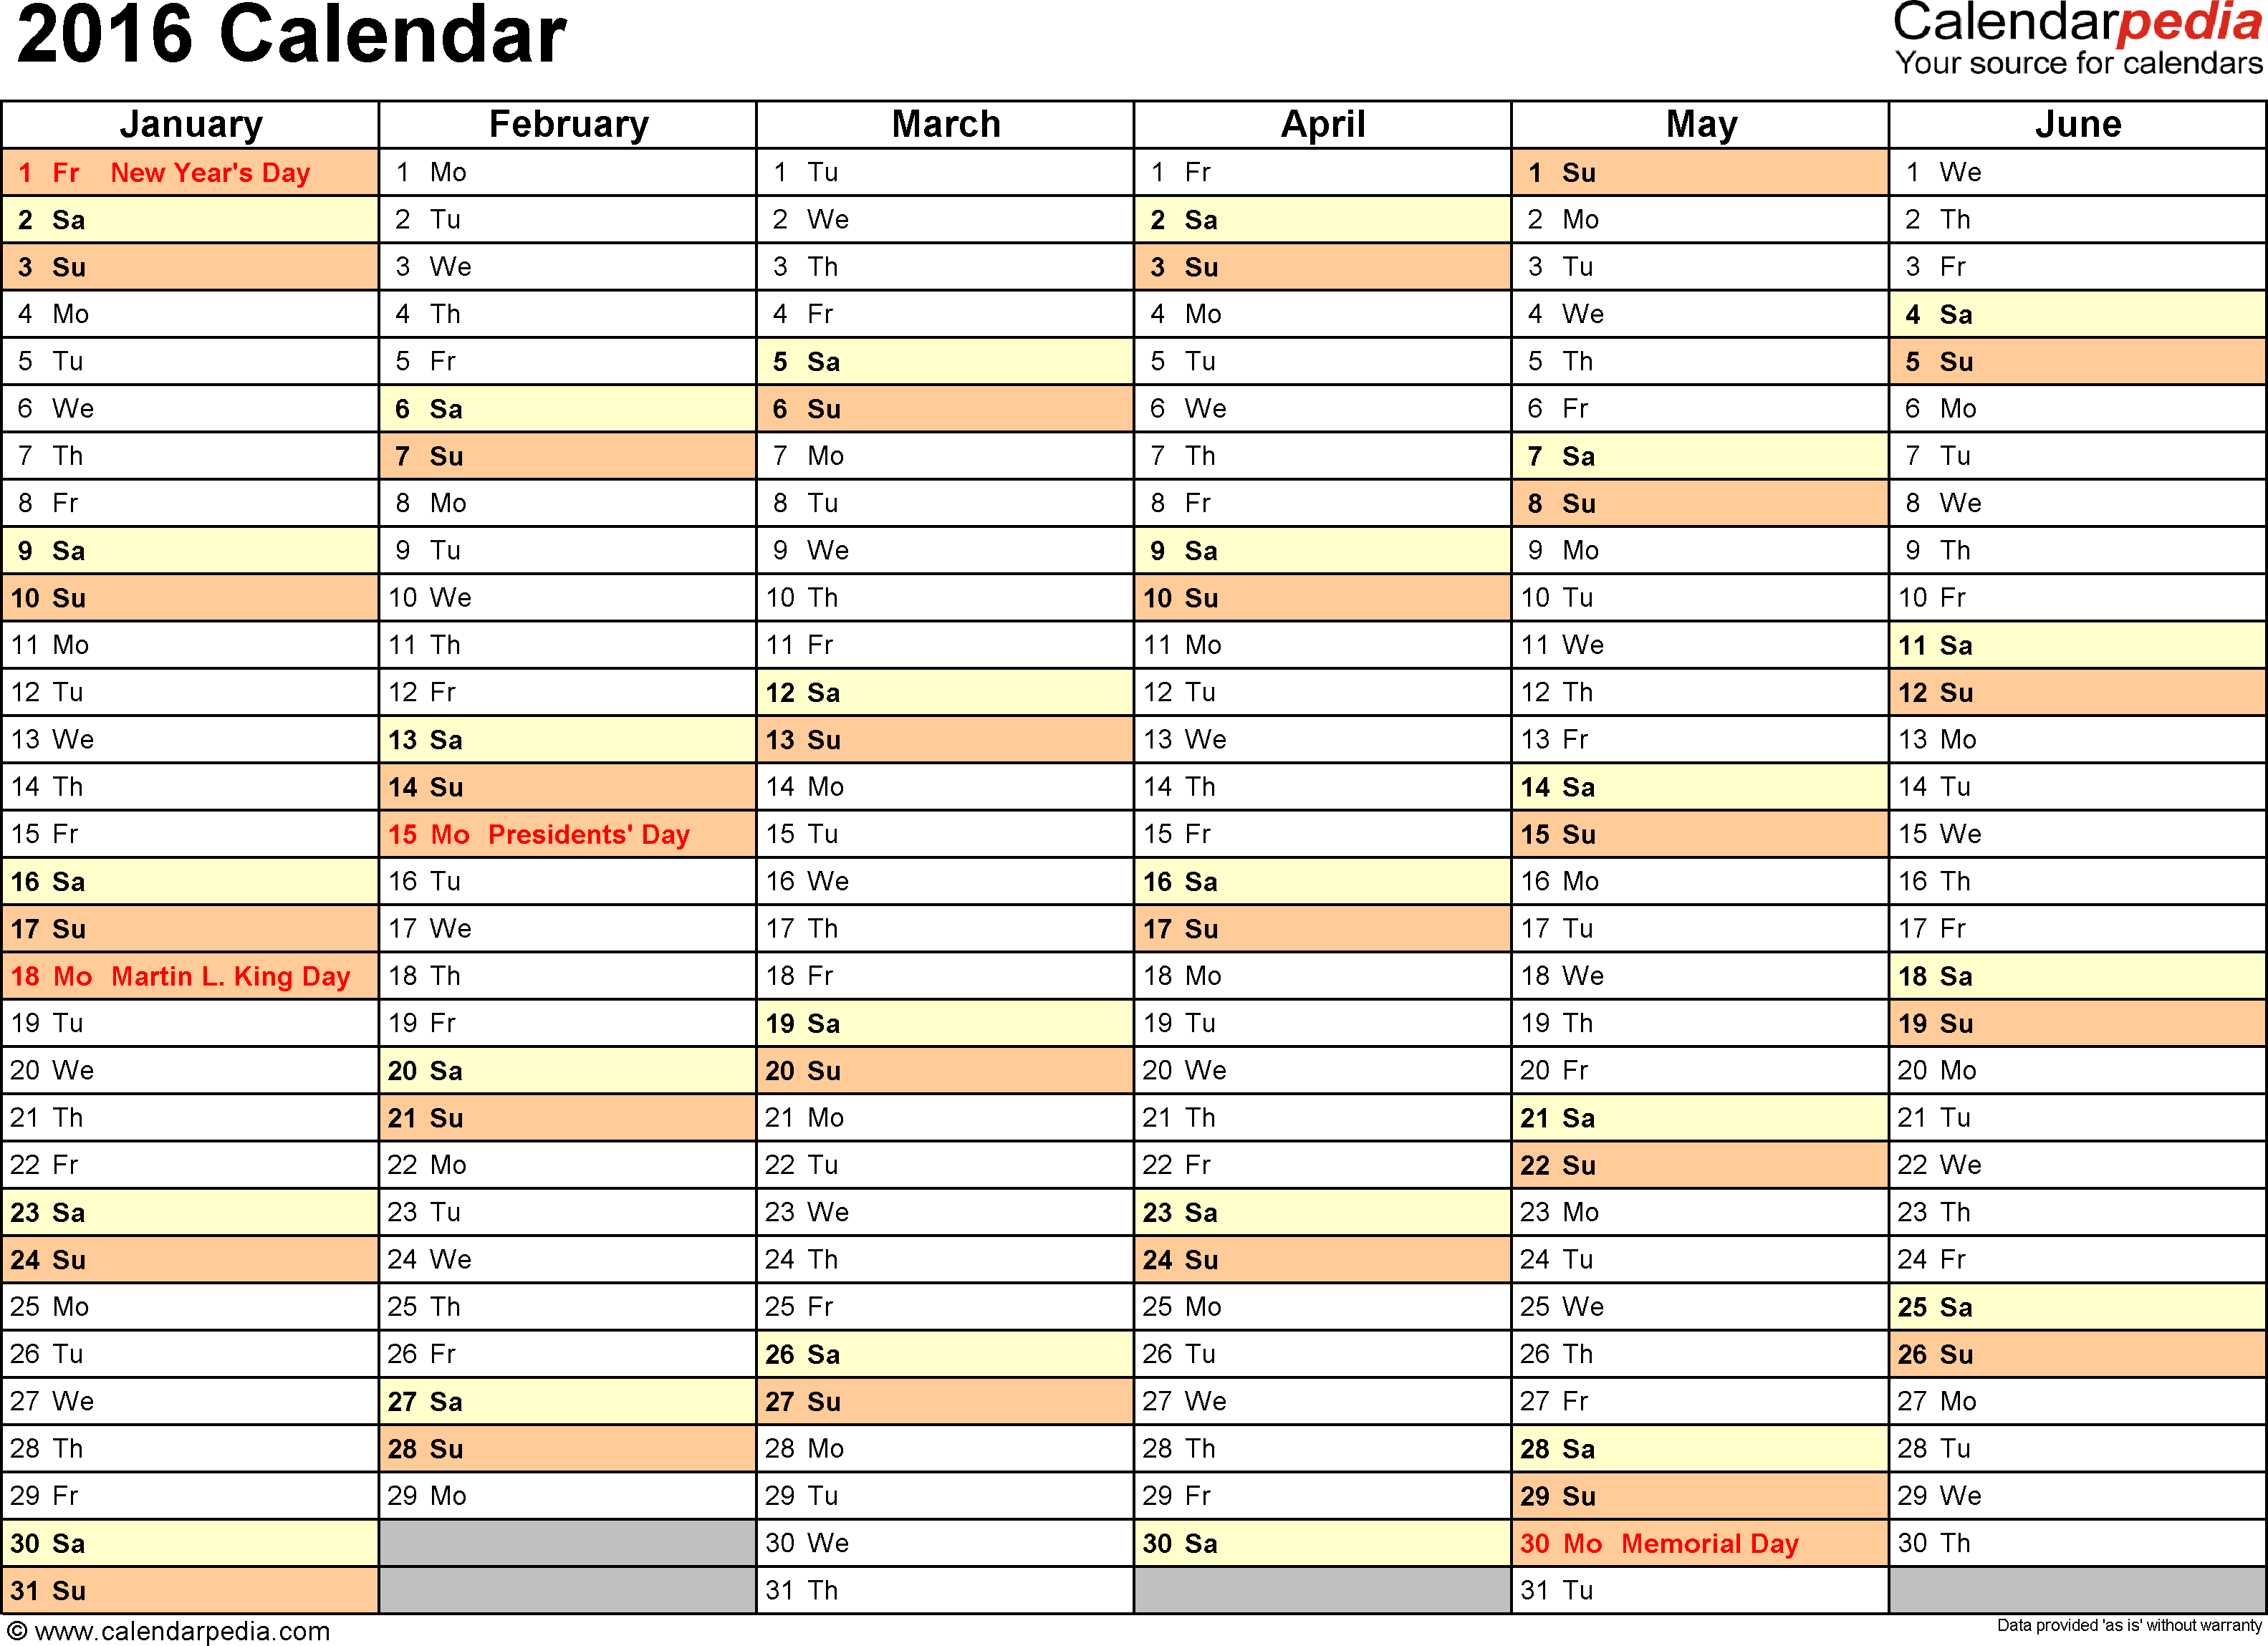 Ediblewildsus  Prepossessing  Calendar  Download  Free Printable Excel Templates Xls With Magnificent Template   Calendar For Excel Months Horizontally  Pages Landscape Orientation With Cute Gradebook Excel Also Date To Month Excel In Addition How Do I Combine Columns In Excel And Excel Number Of Cells As Well As Spline Interpolation Excel Additionally Random Sampling Excel From Calendarpediacom With Ediblewildsus  Magnificent  Calendar  Download  Free Printable Excel Templates Xls With Cute Template   Calendar For Excel Months Horizontally  Pages Landscape Orientation And Prepossessing Gradebook Excel Also Date To Month Excel In Addition How Do I Combine Columns In Excel From Calendarpediacom